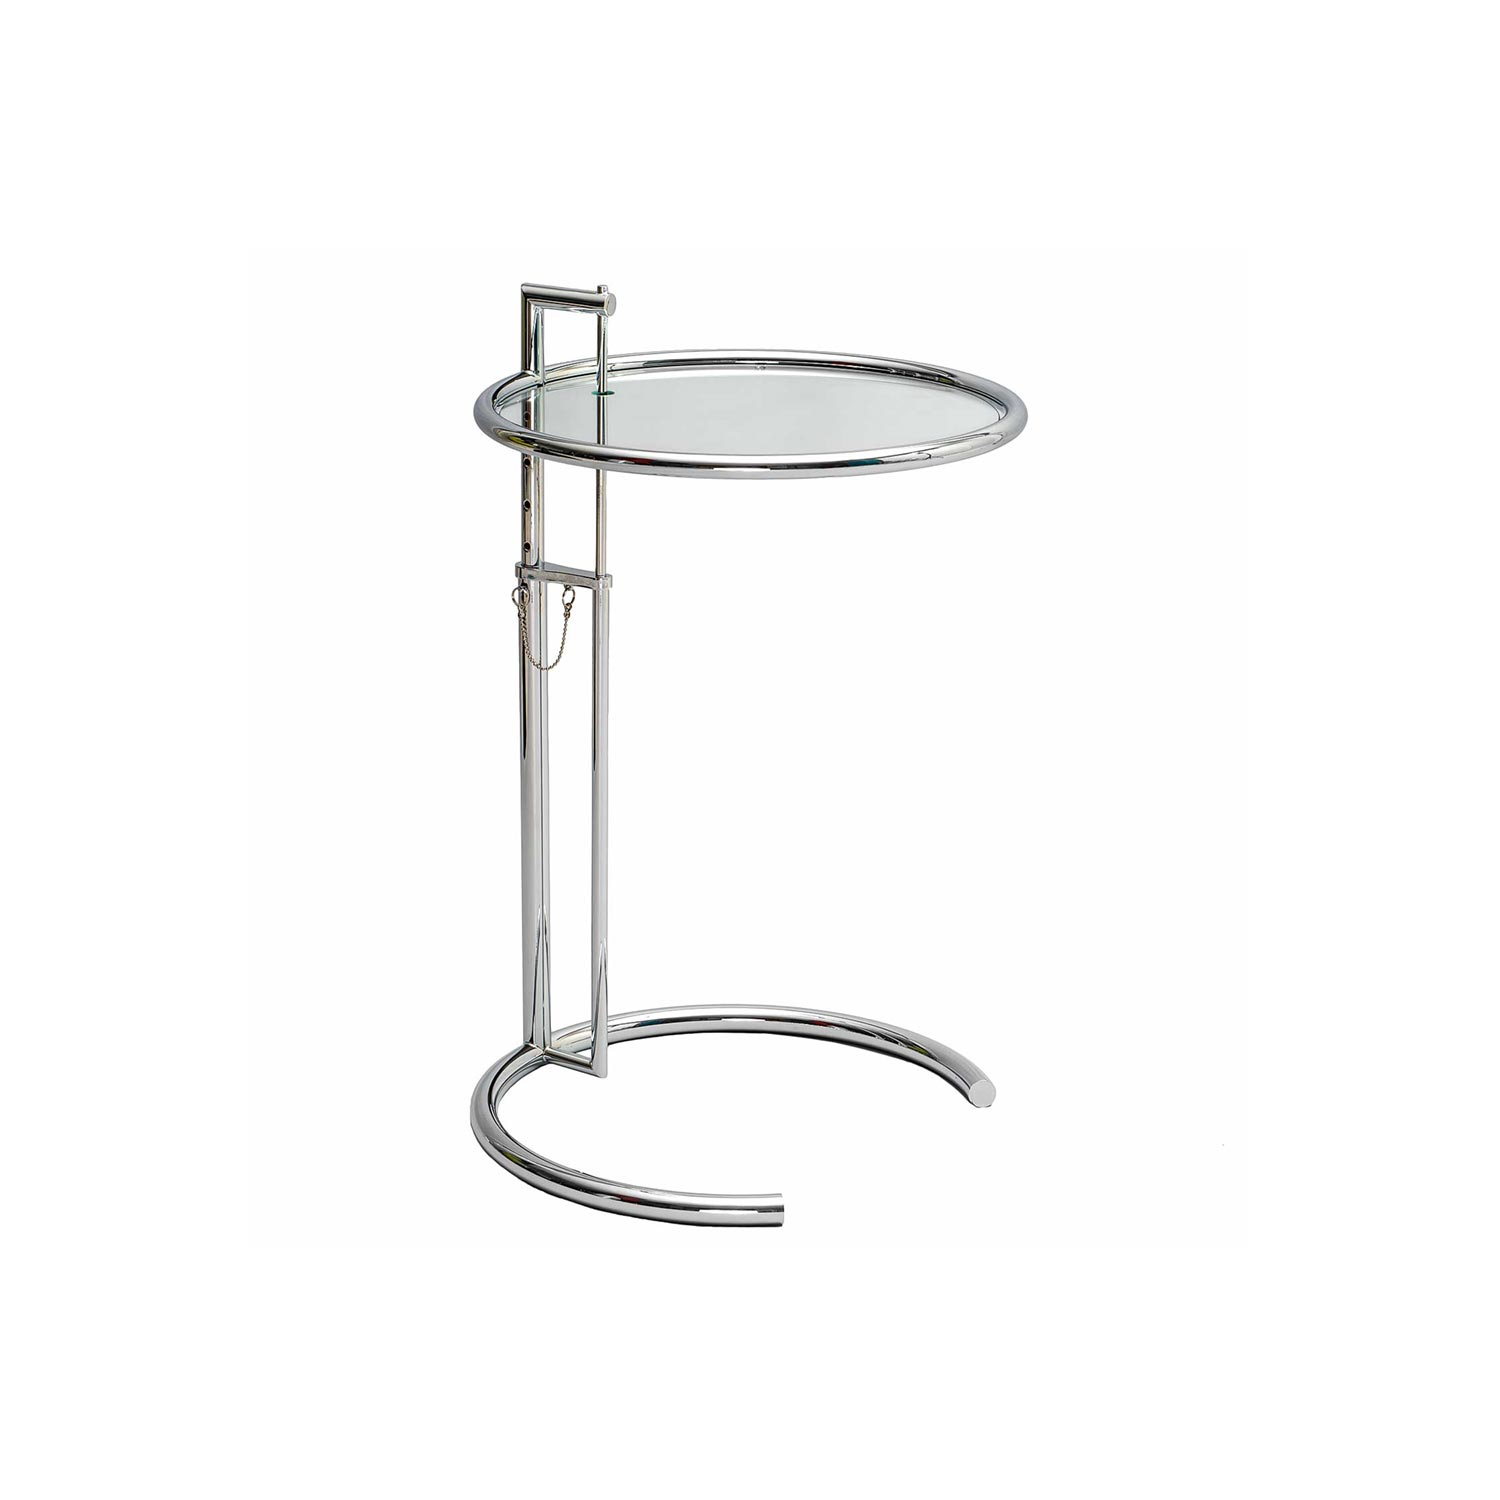 100 Remarquable Idées Table Eileen Gray Prix